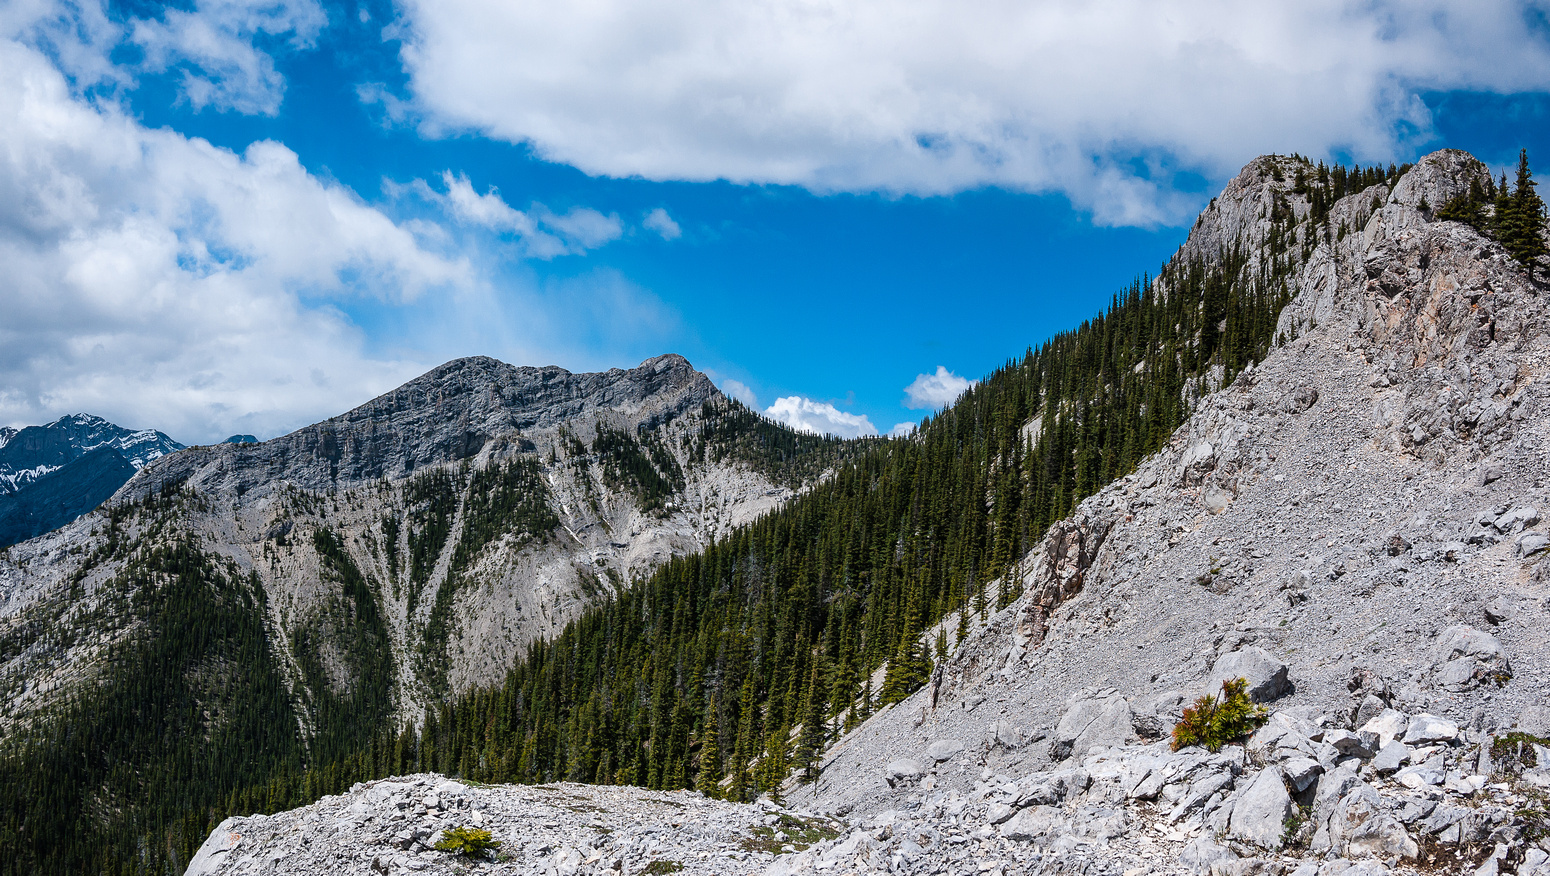 Descending to Baldy Pass, looking back at the ridge (R) and West Baldy (C).